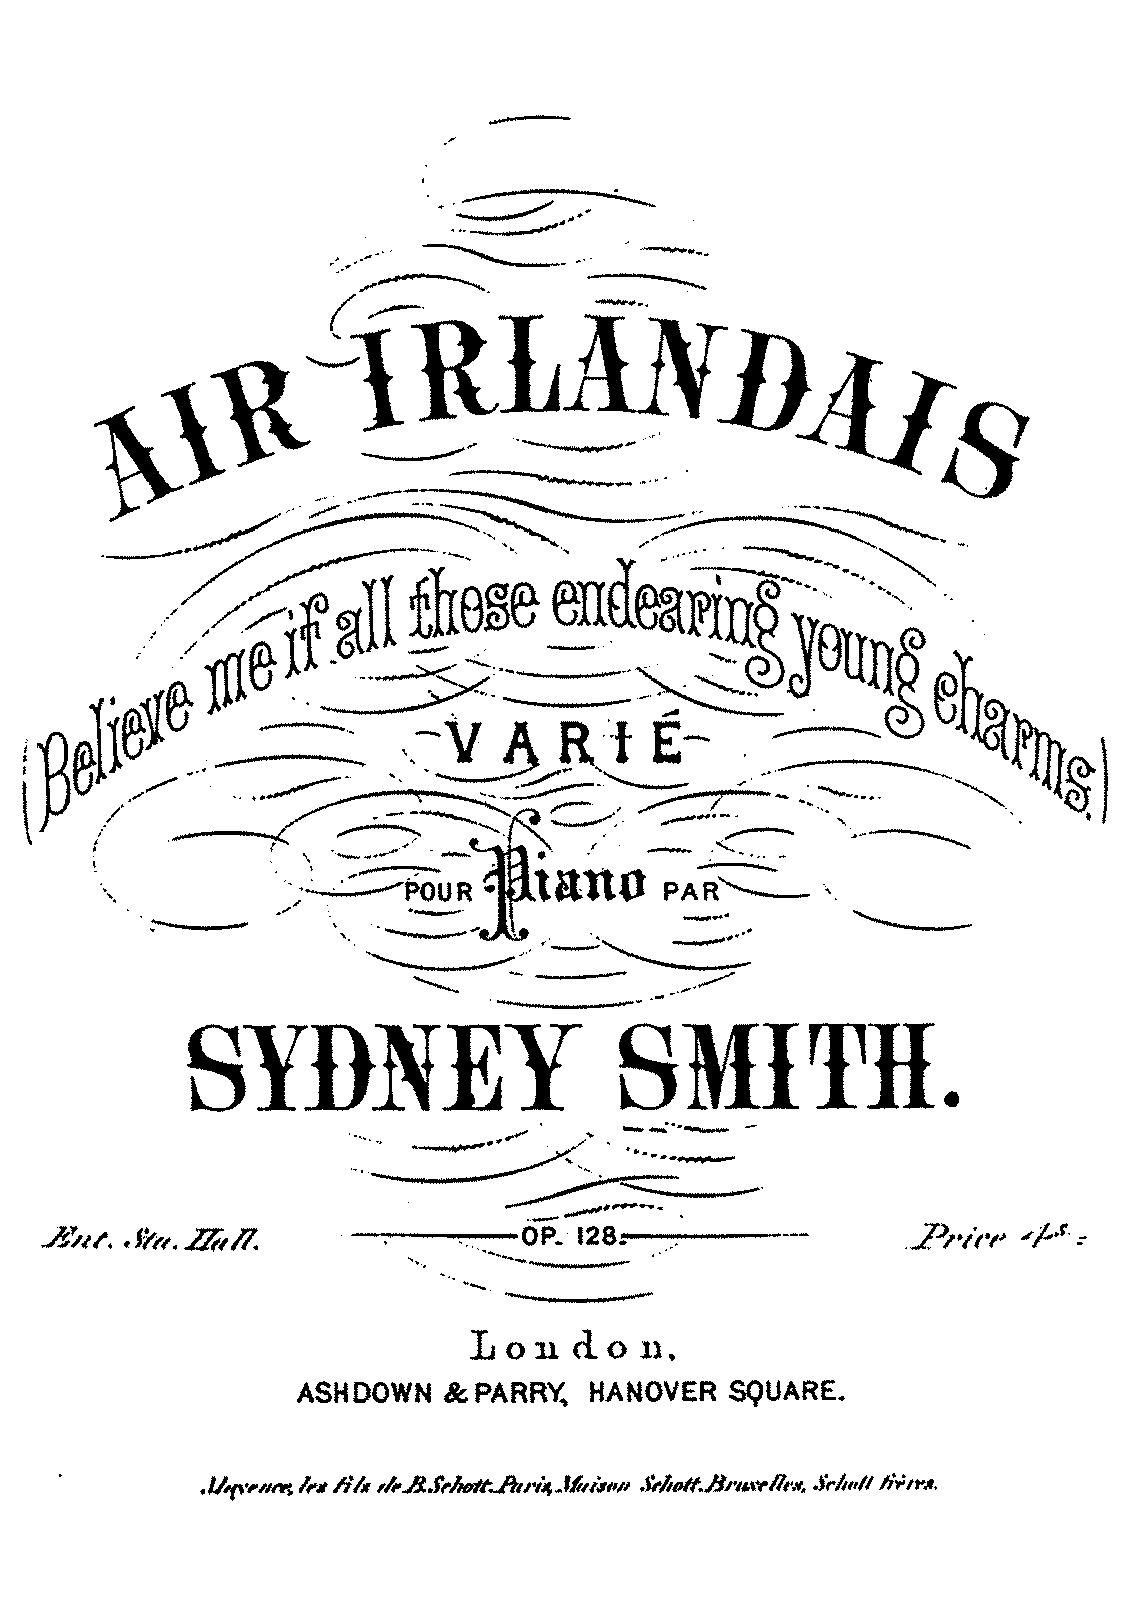 PMLP113115-Smith, Sydney op.128 air irlandais.pdf